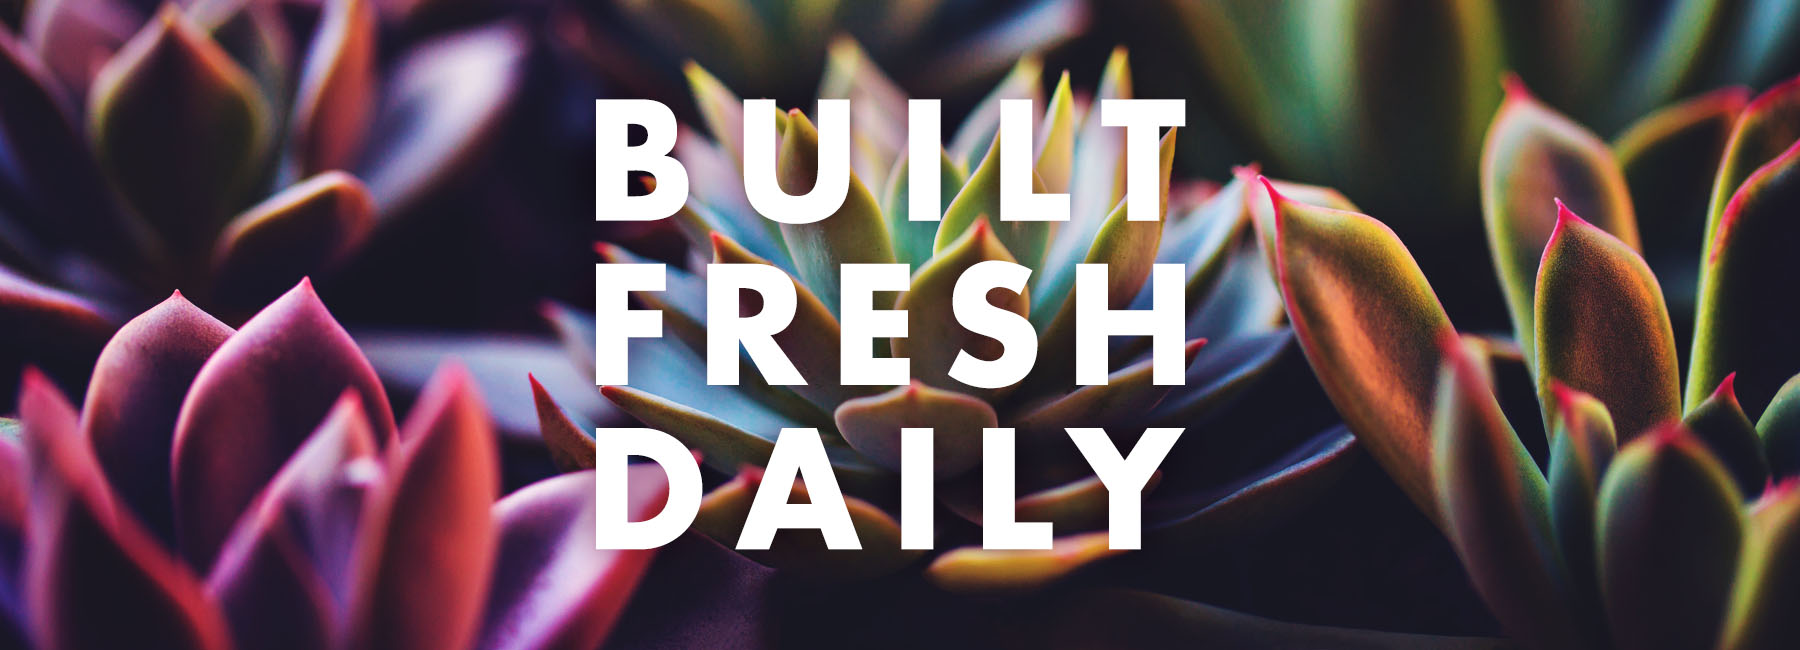 built fresh daily